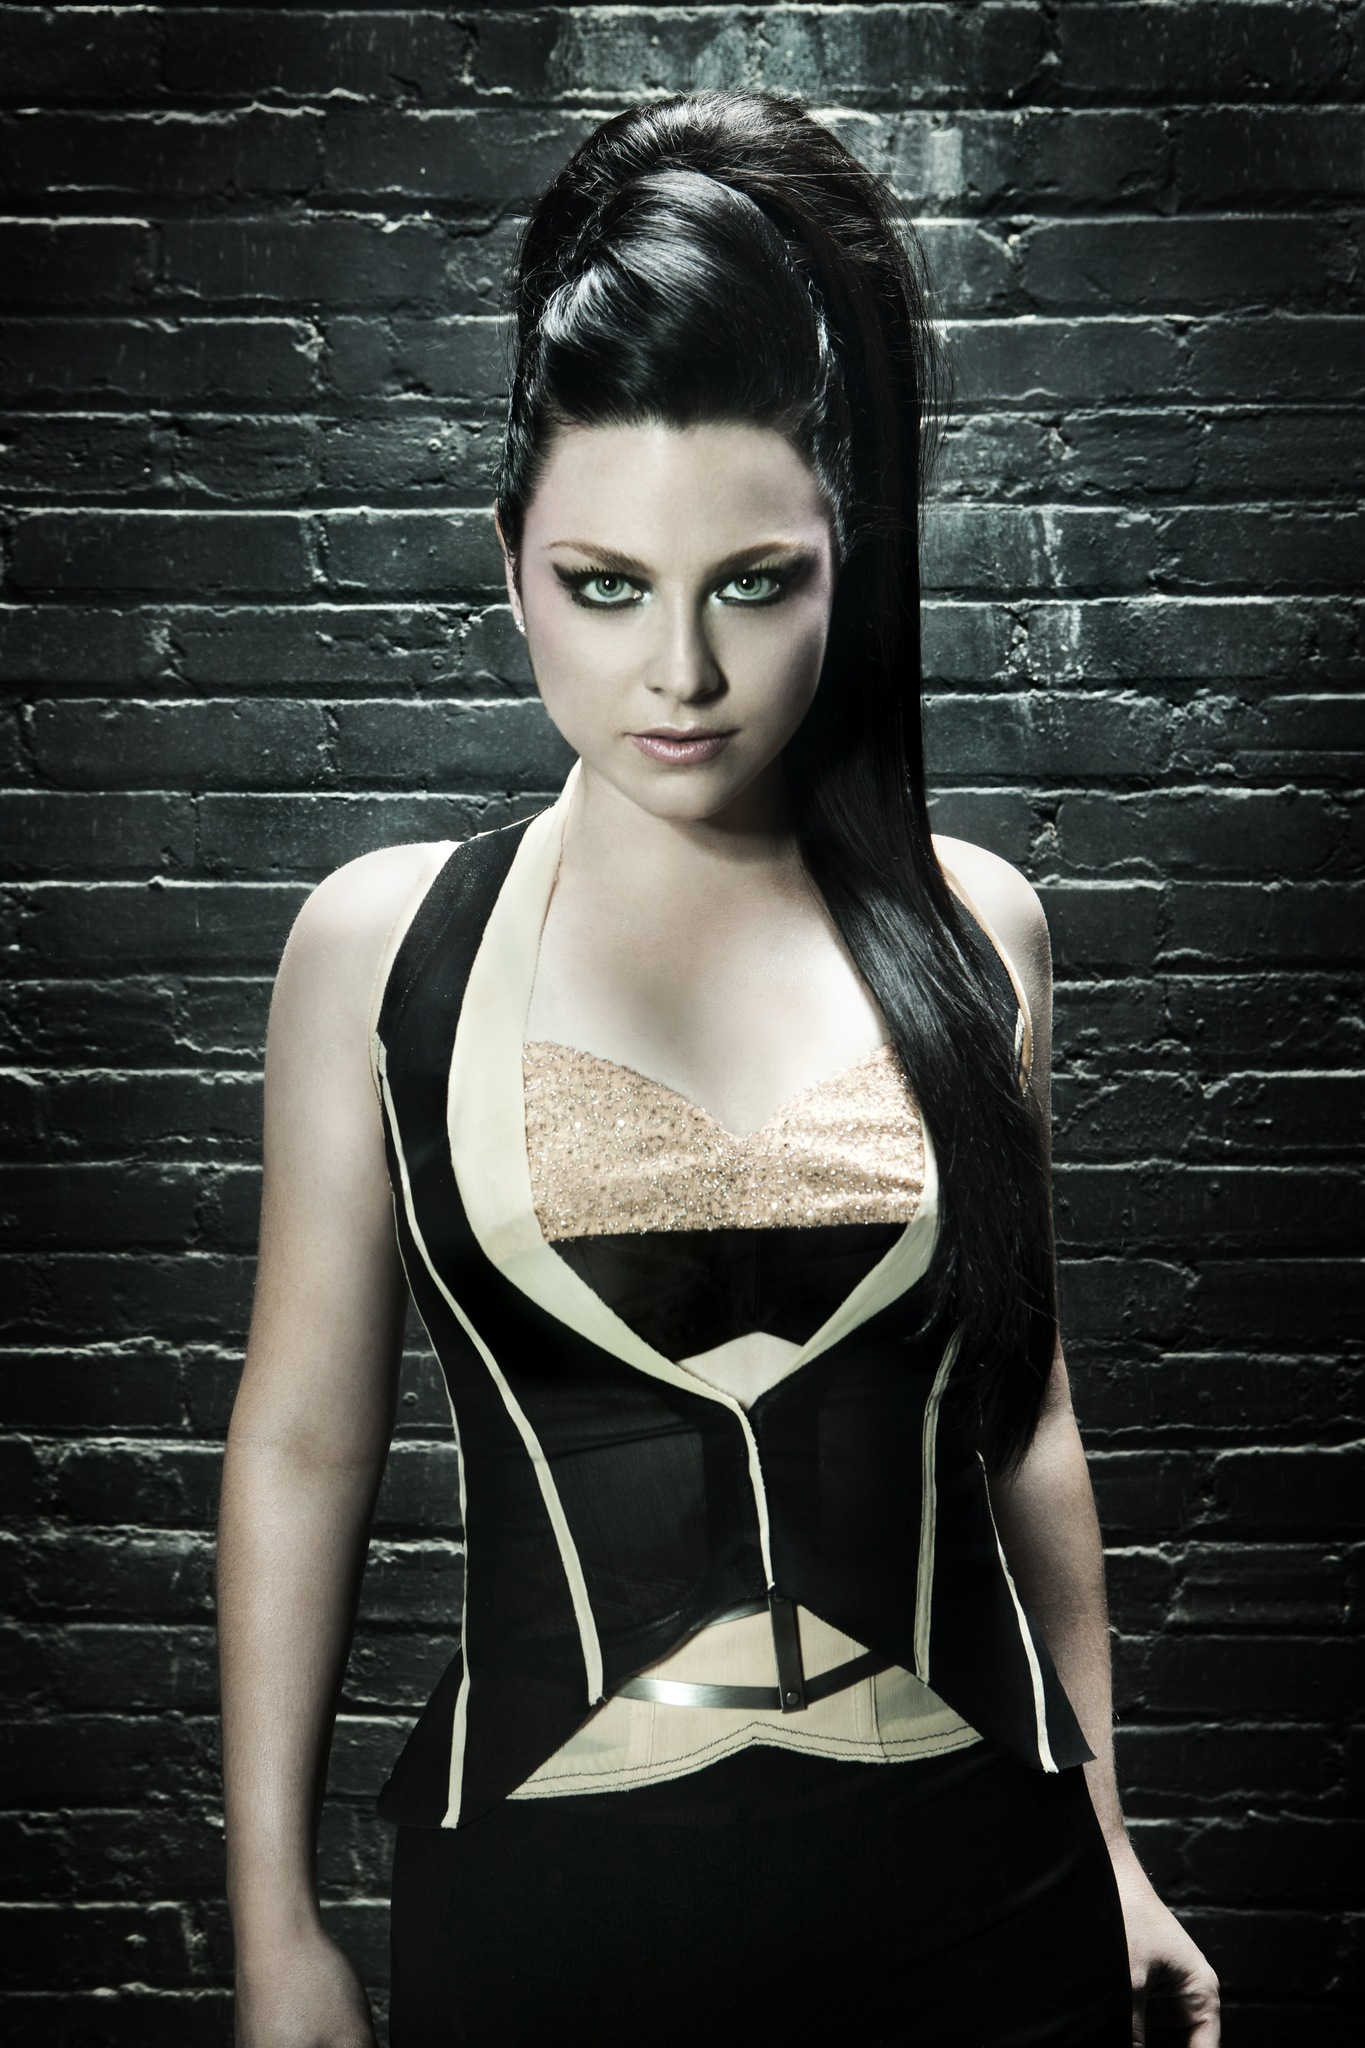 http://evanescence-rus.ru/images/upload/w_0a80e030.jpg